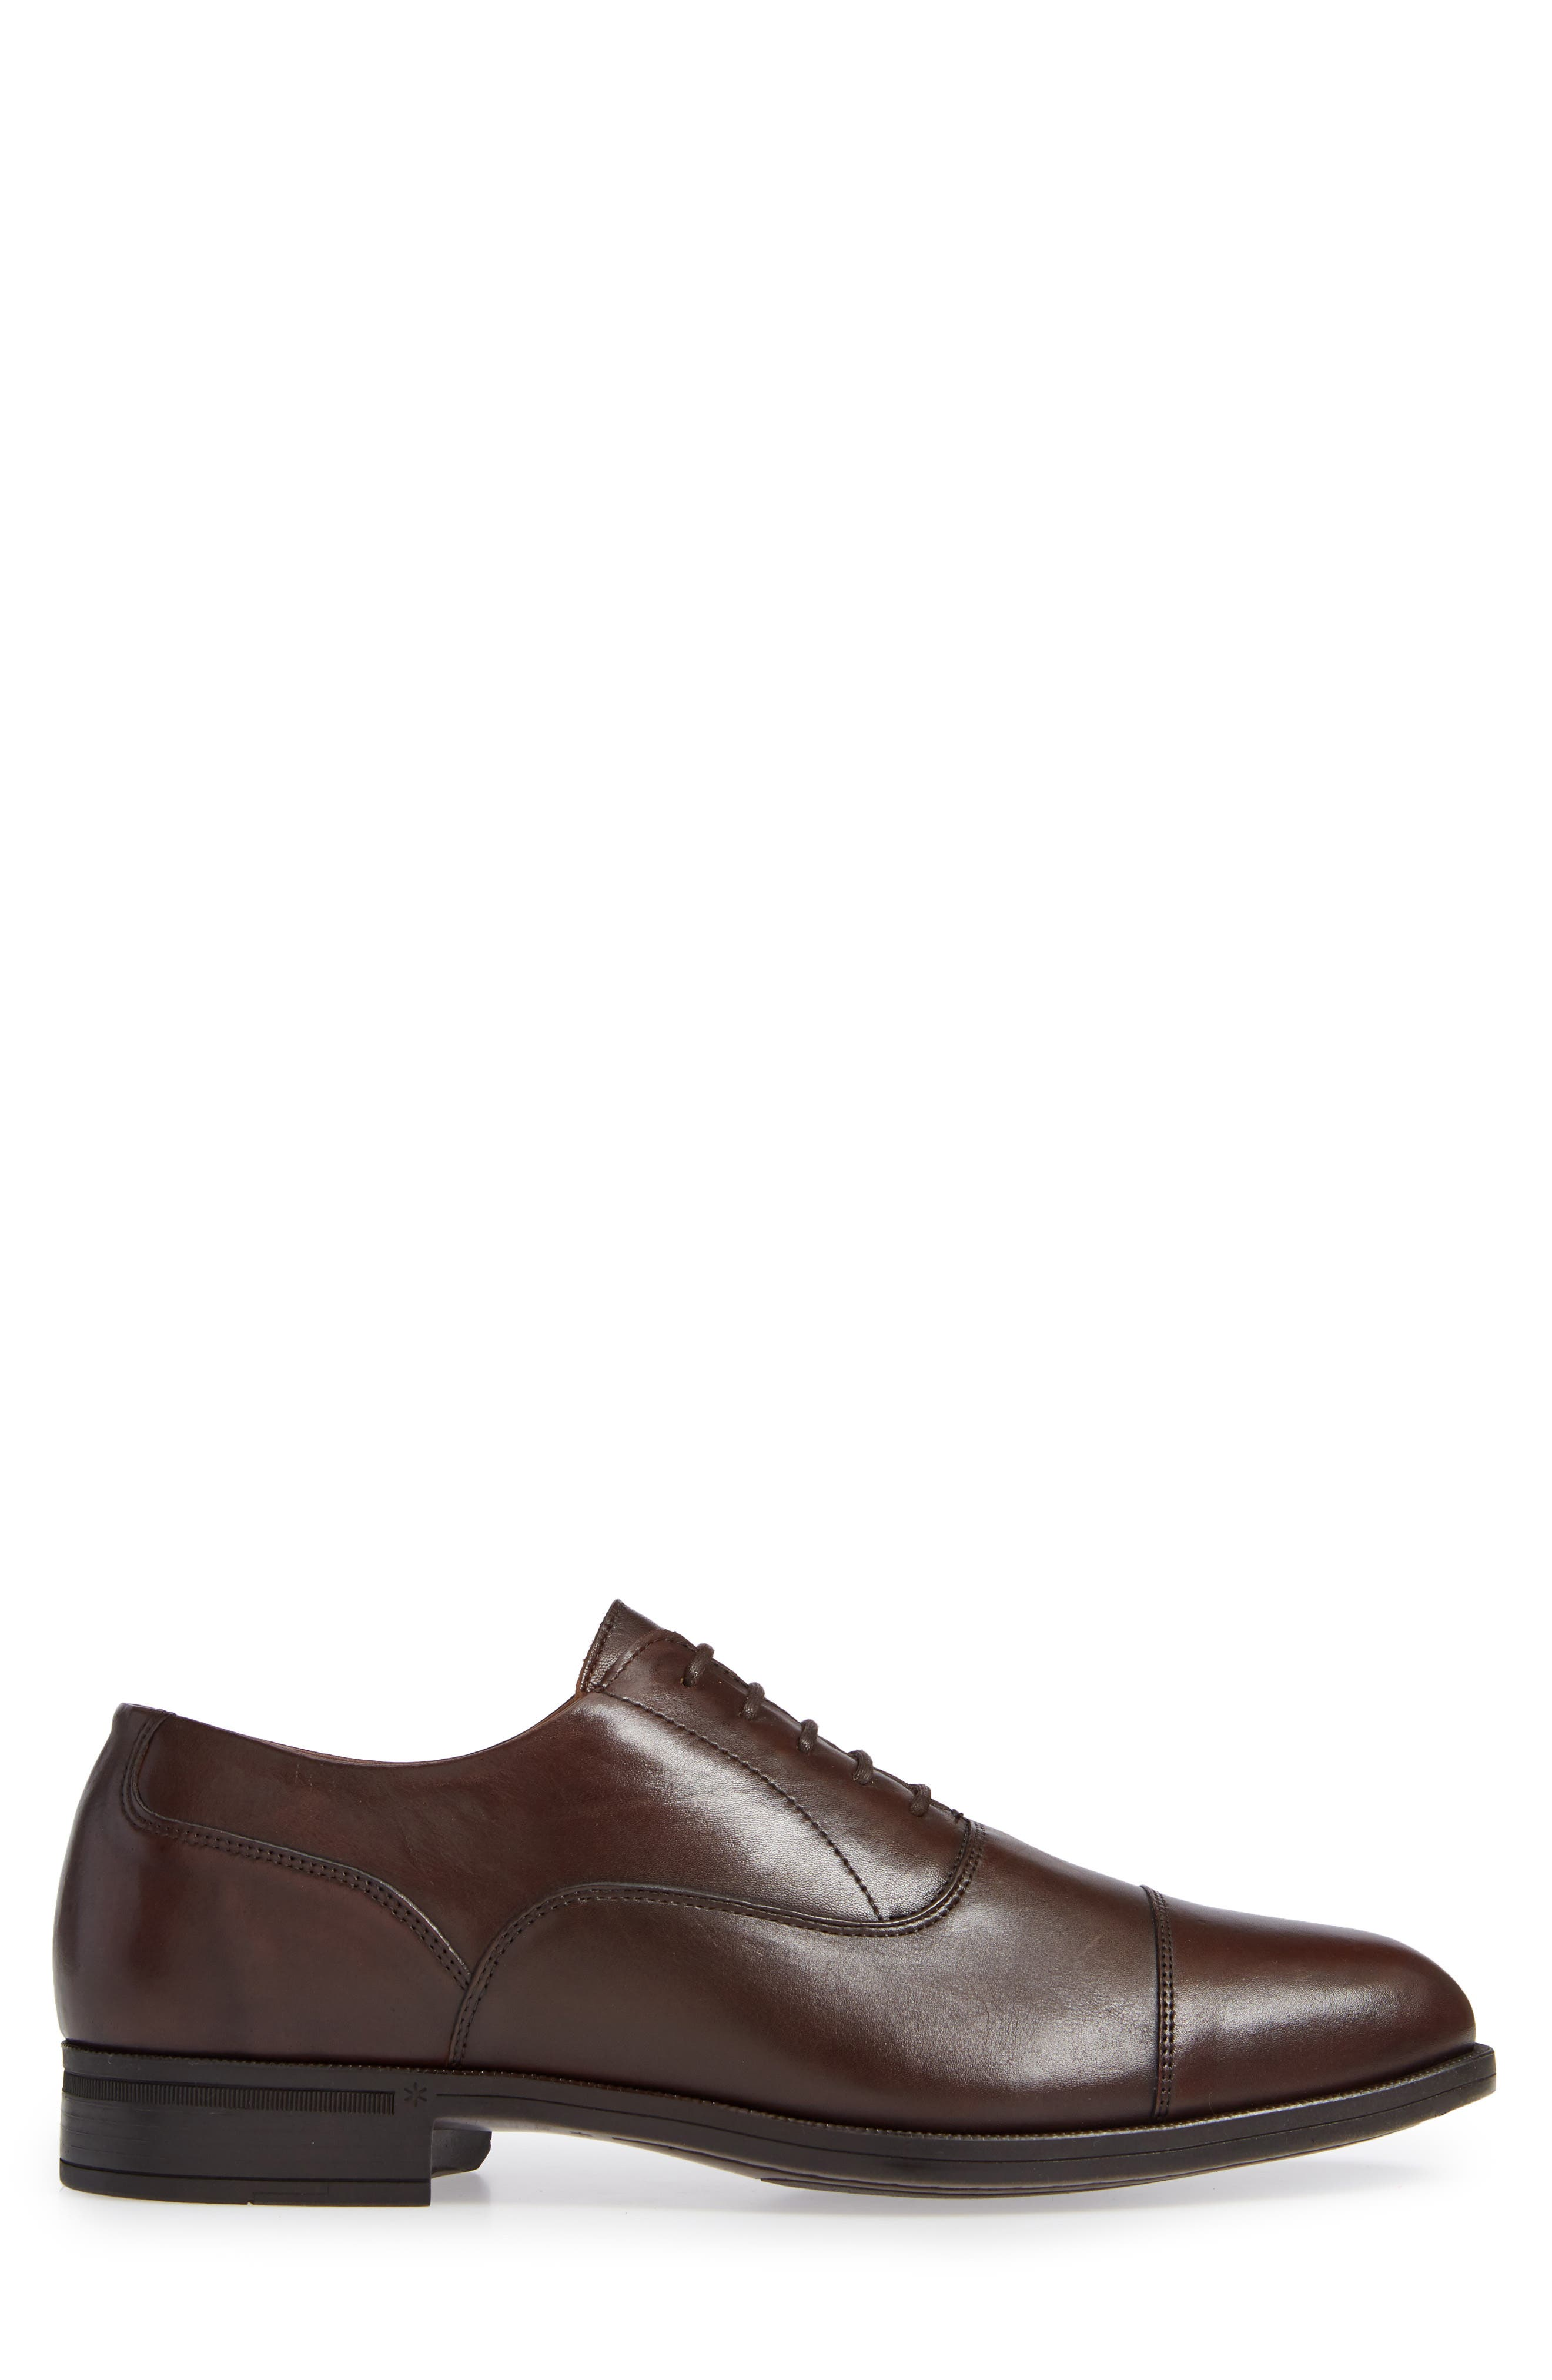 VINCE CAMUTO, Iven Cap Toe Oxford, Alternate thumbnail 3, color, DARK BROWN LEATHER